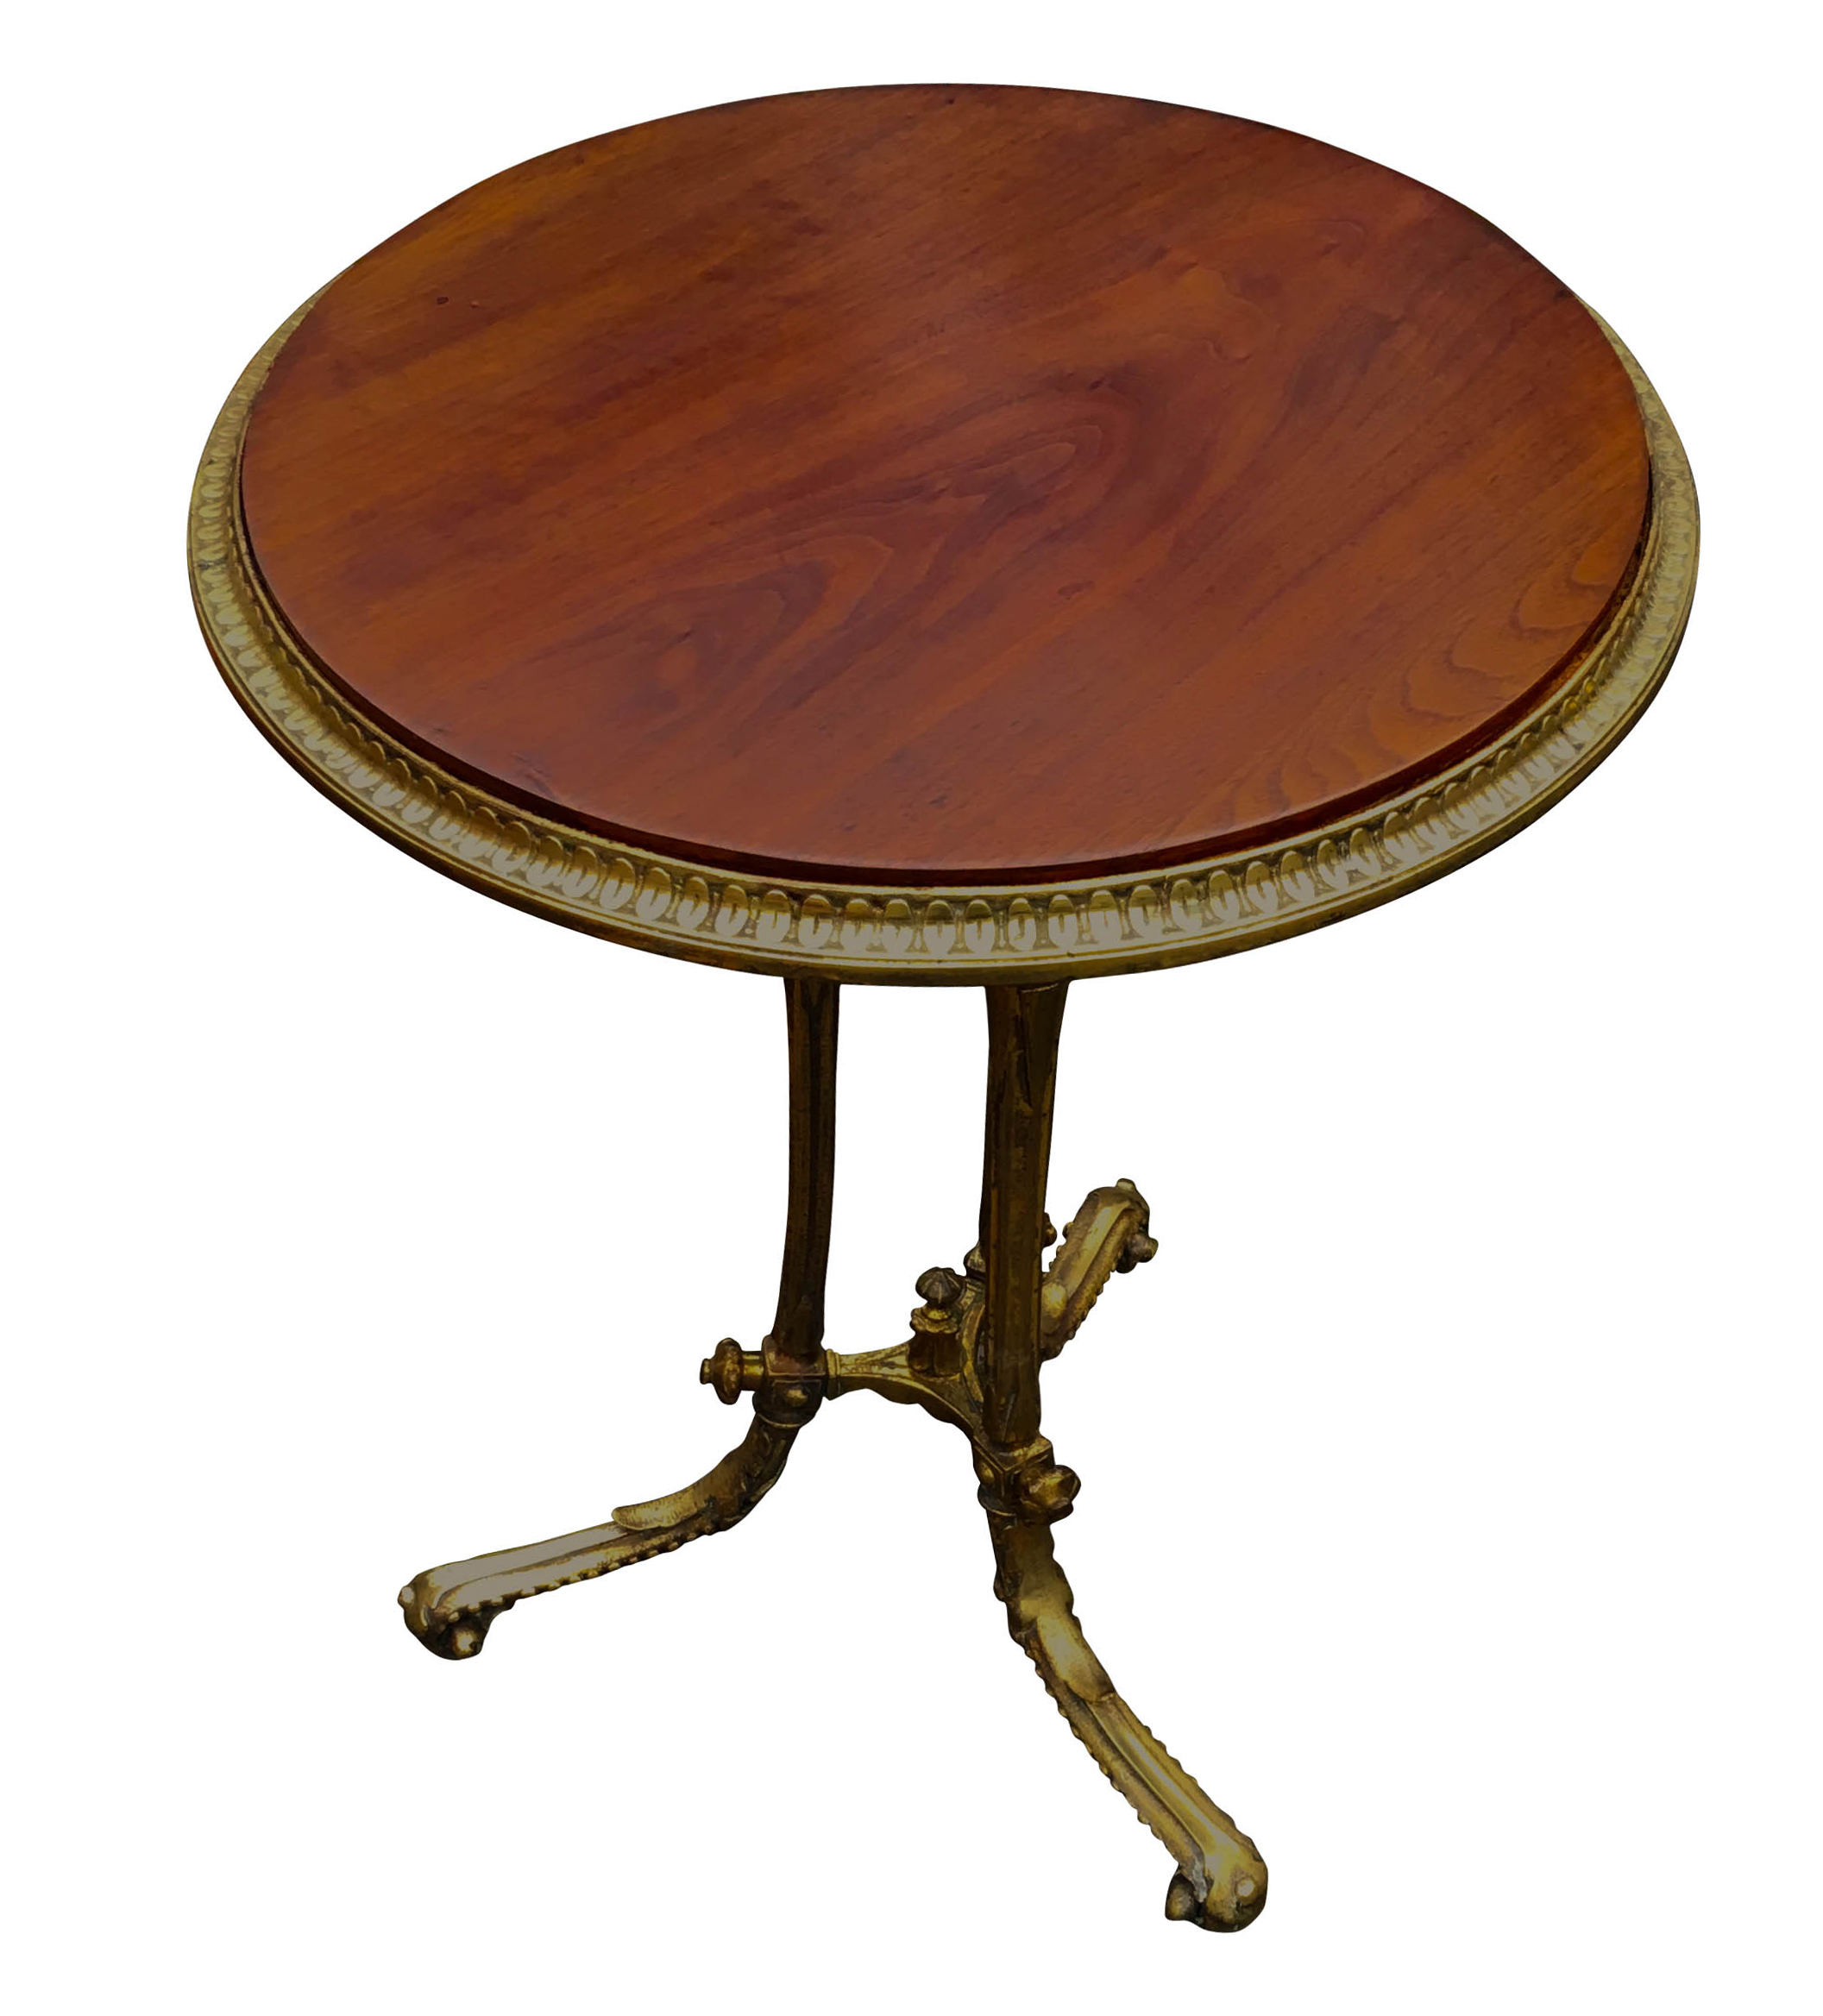 Antique Brass and Walnut Occasional Table